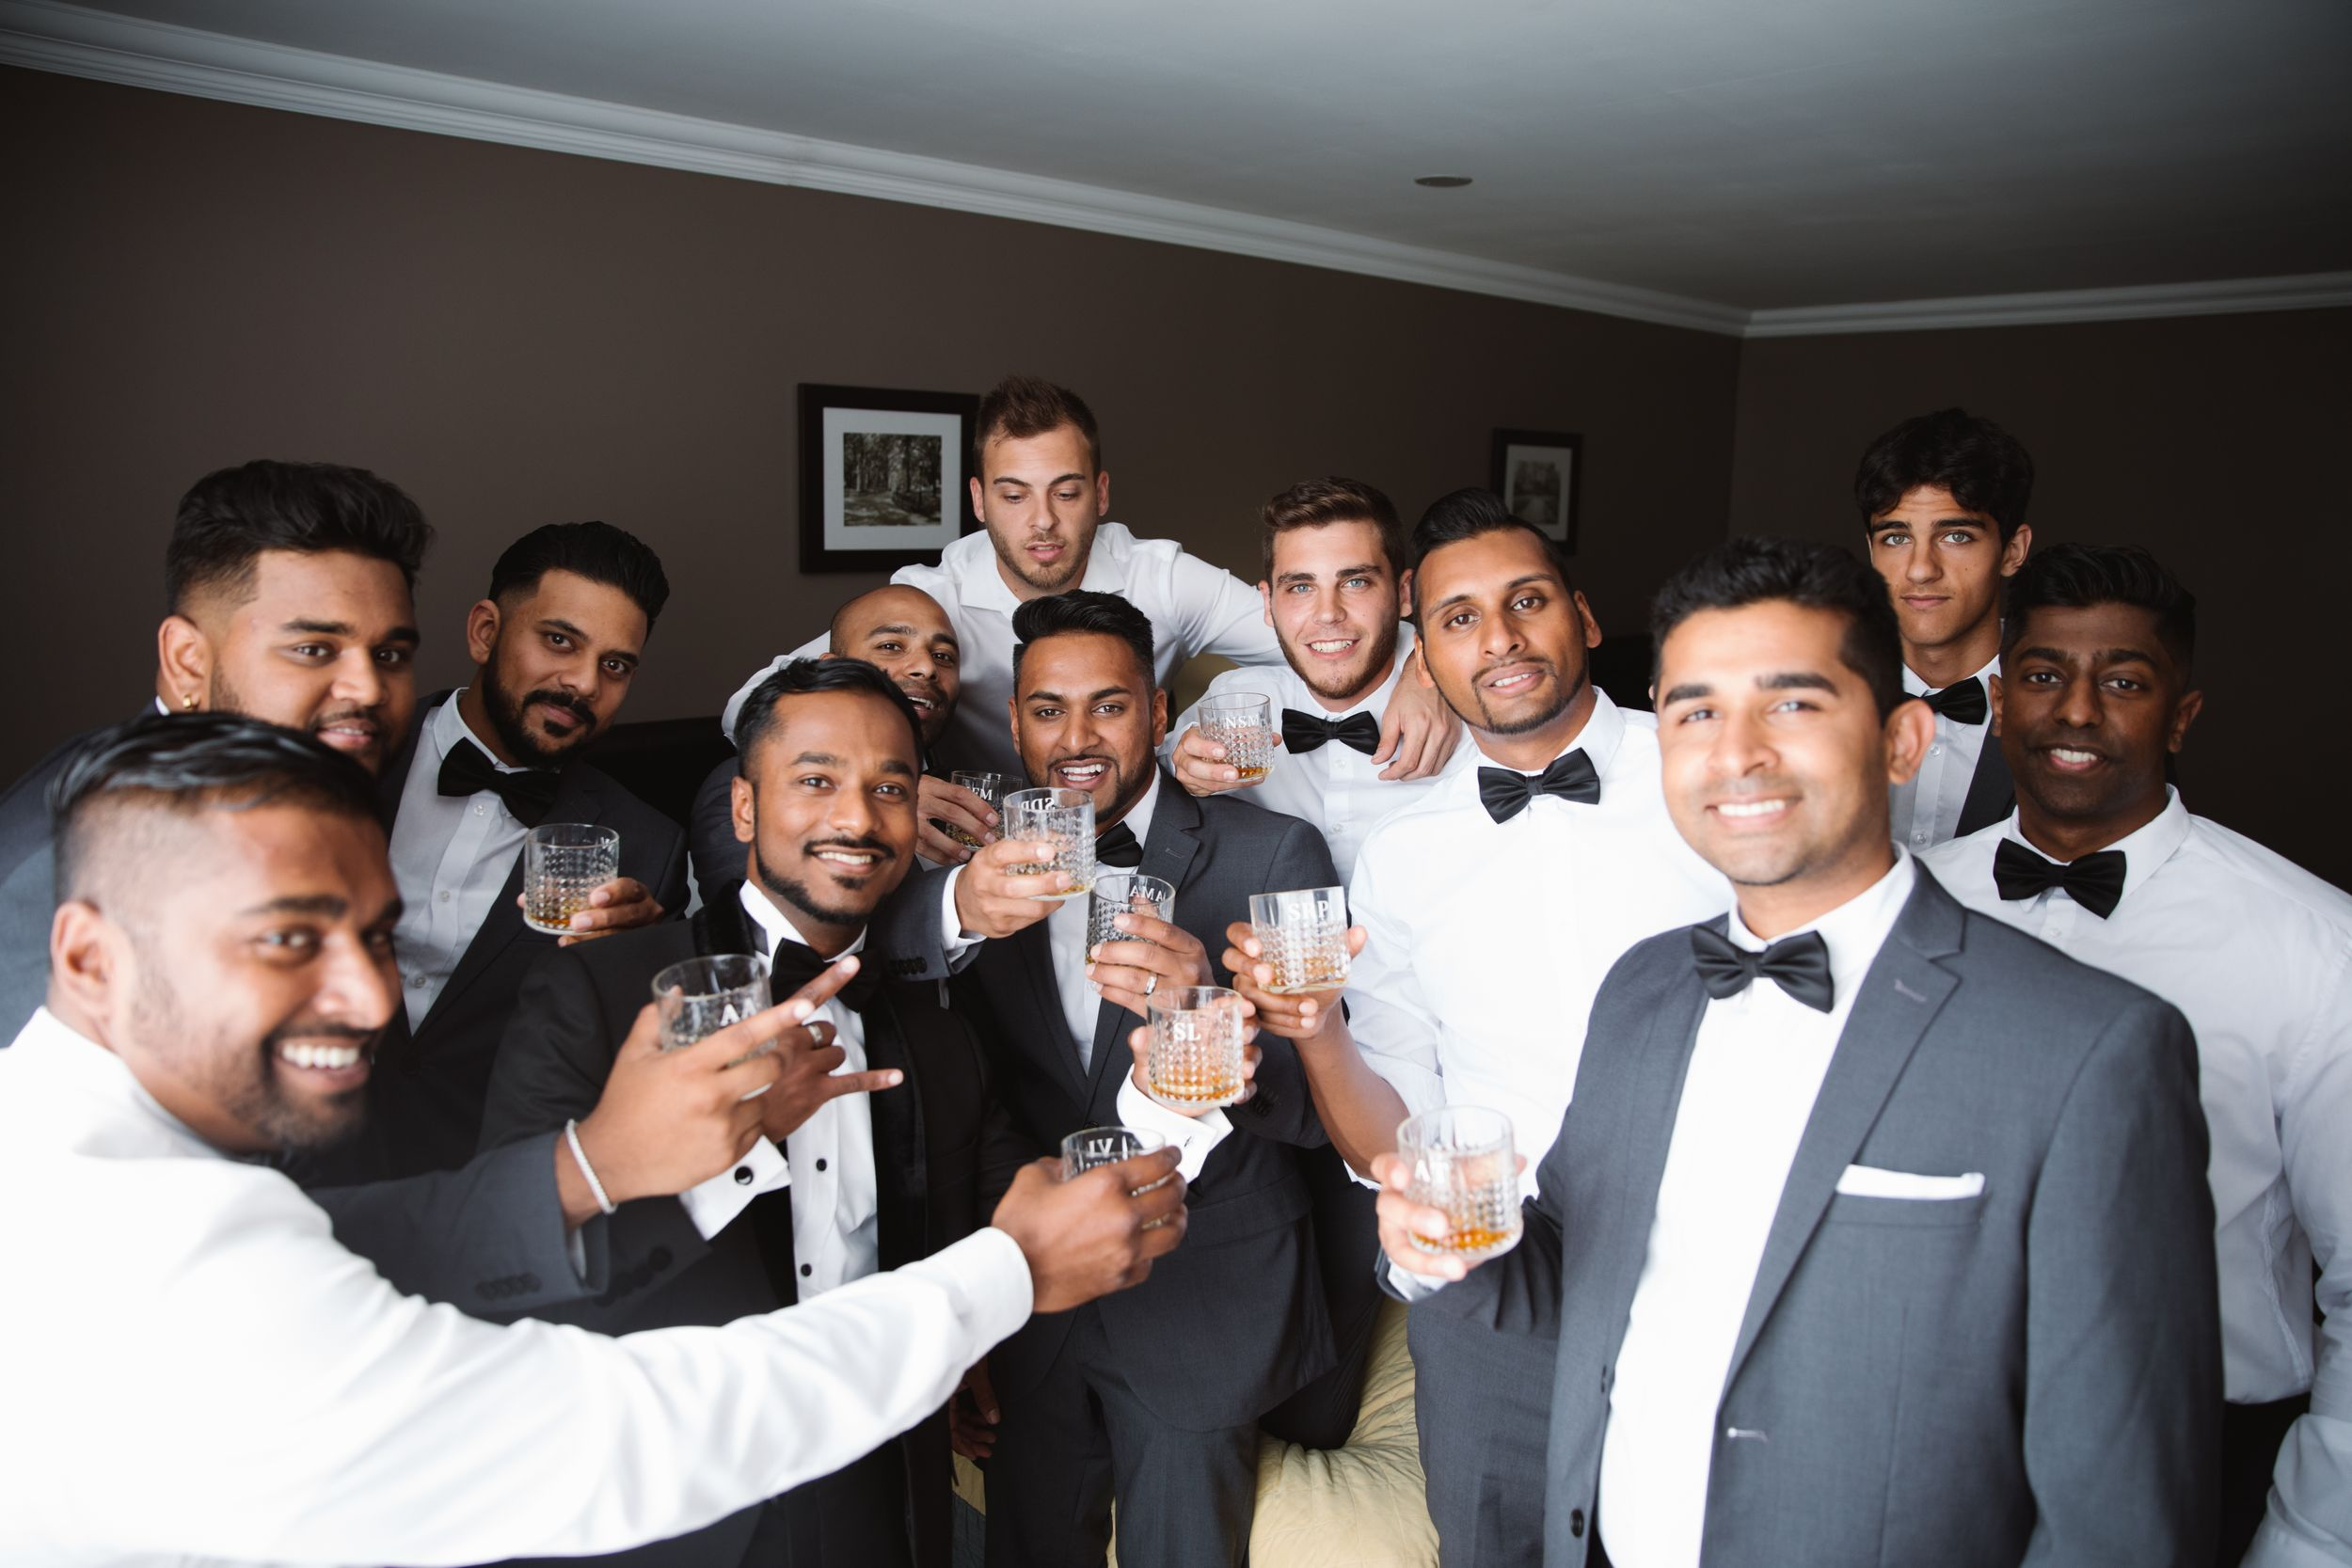 groomsmen cheersing glasses of whiskey